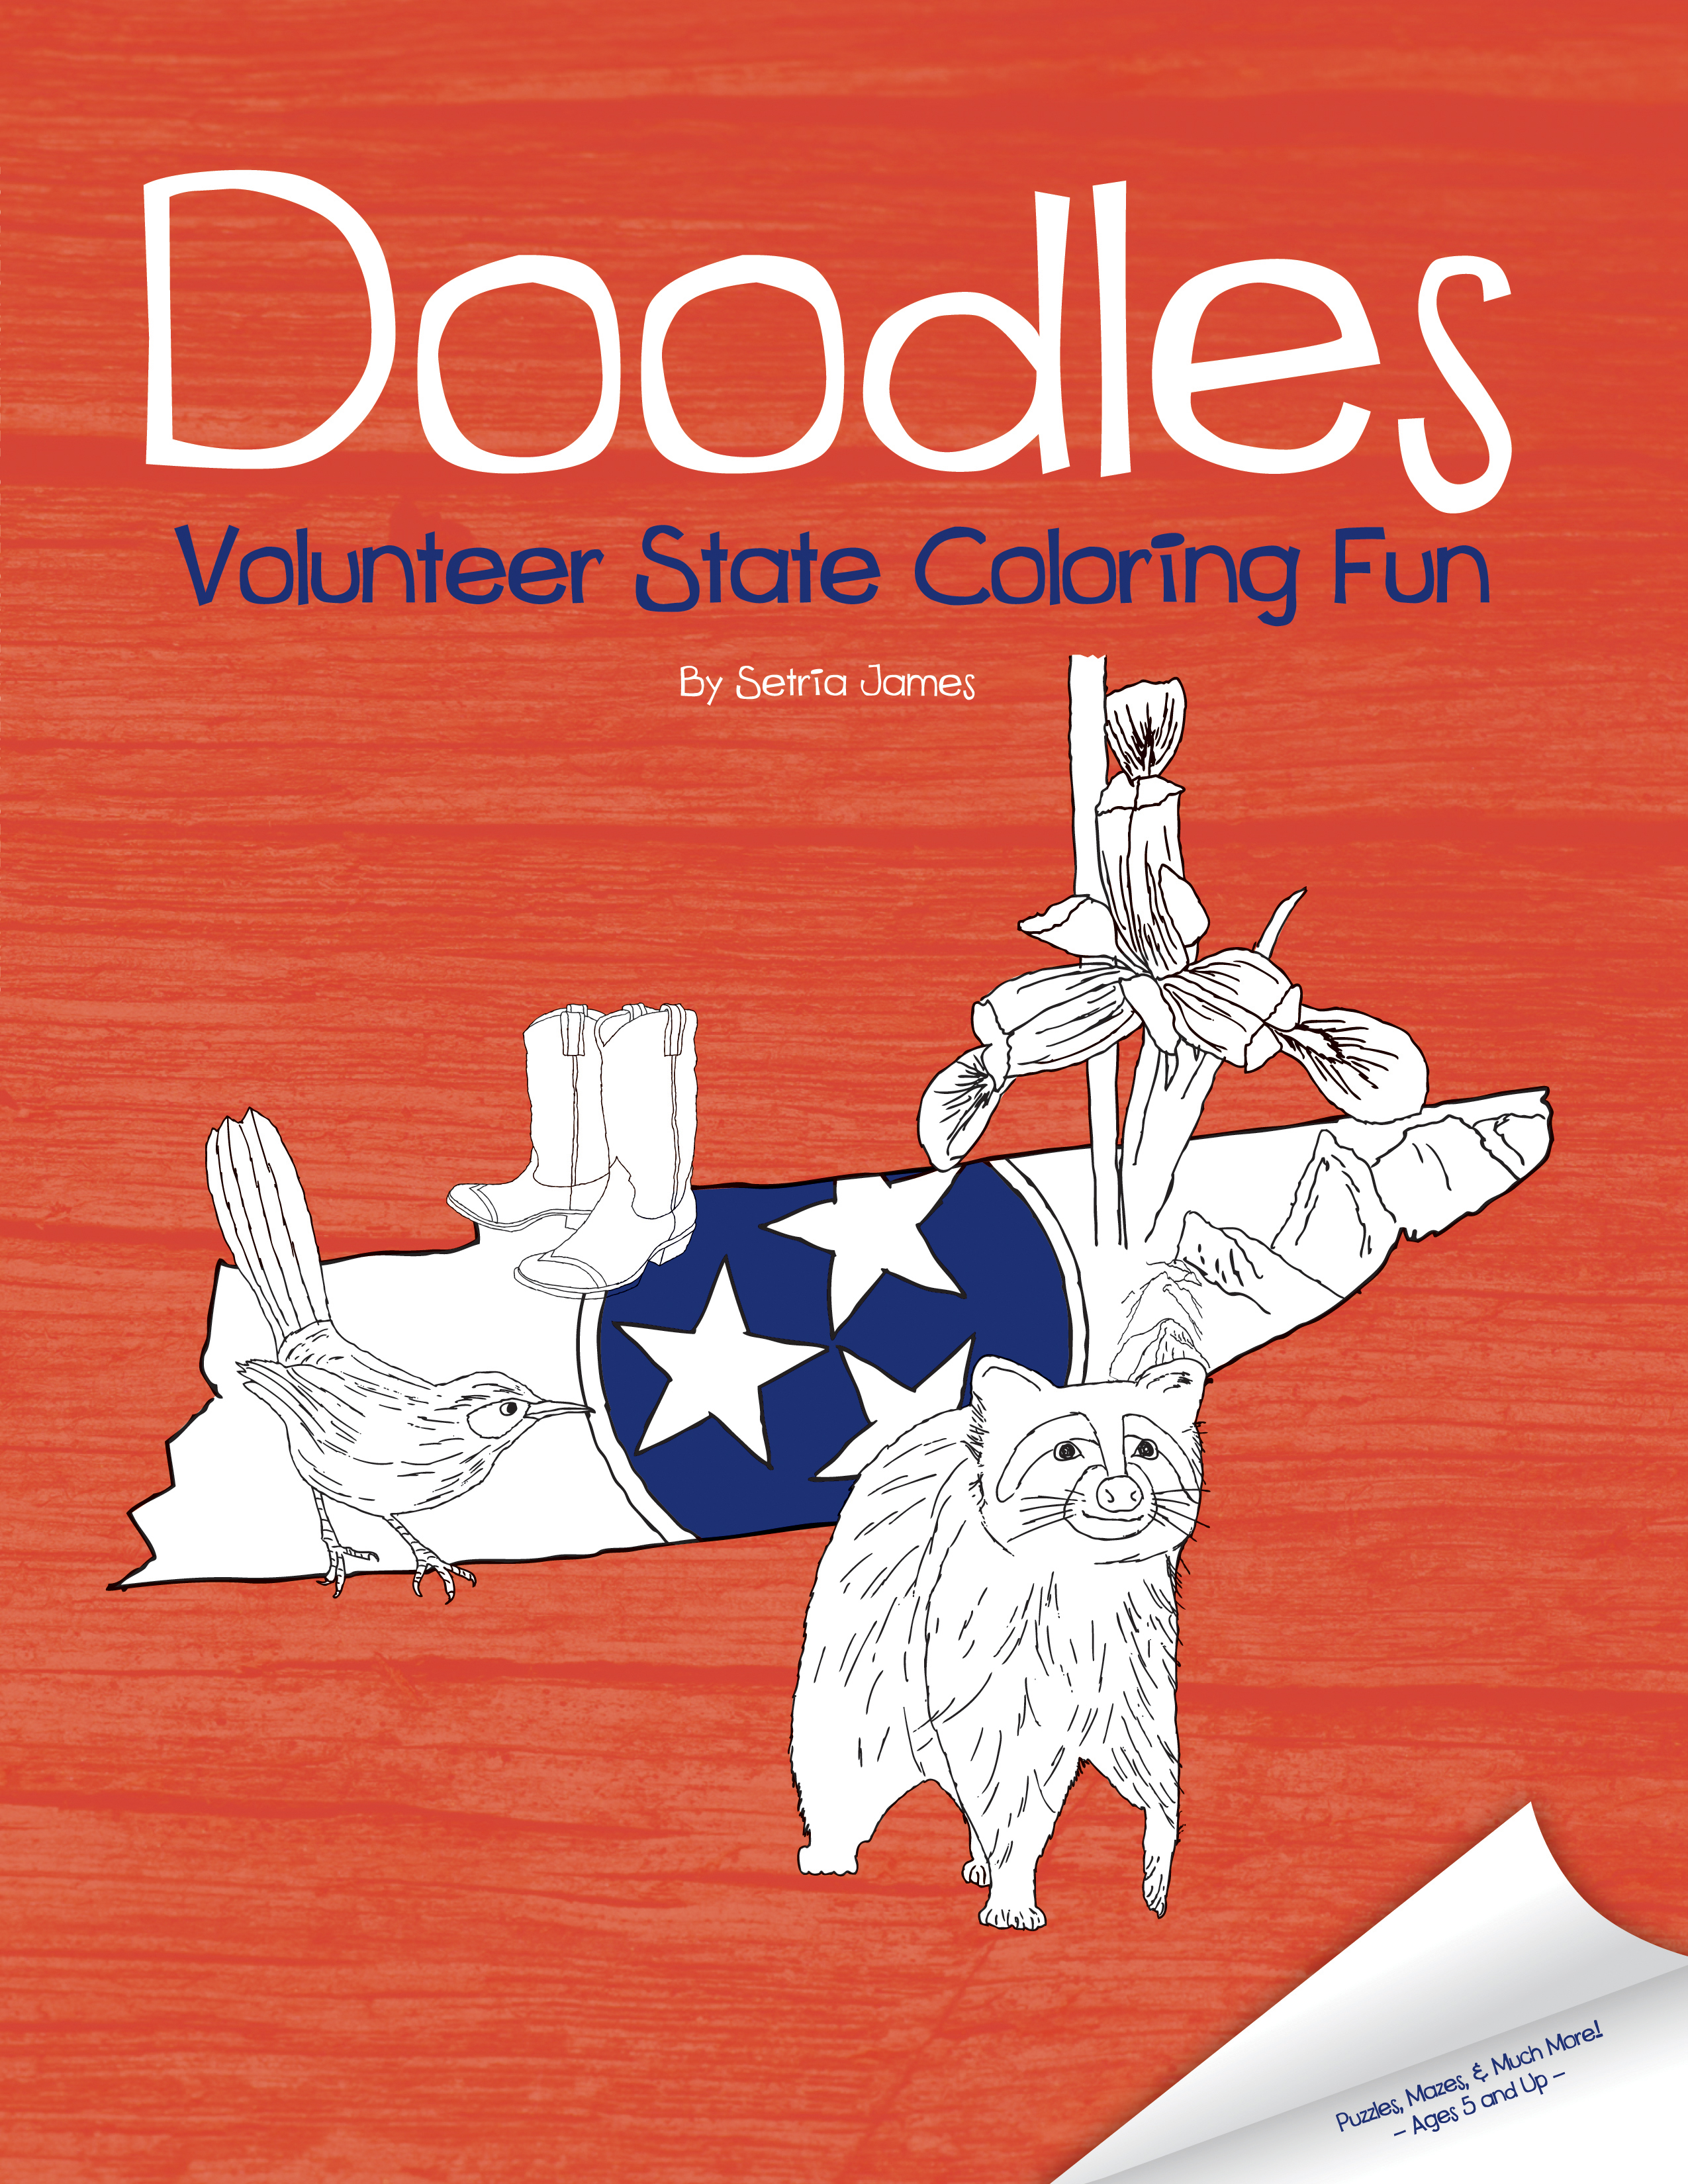 doodles-ave-volunteer-state-coloring-fun